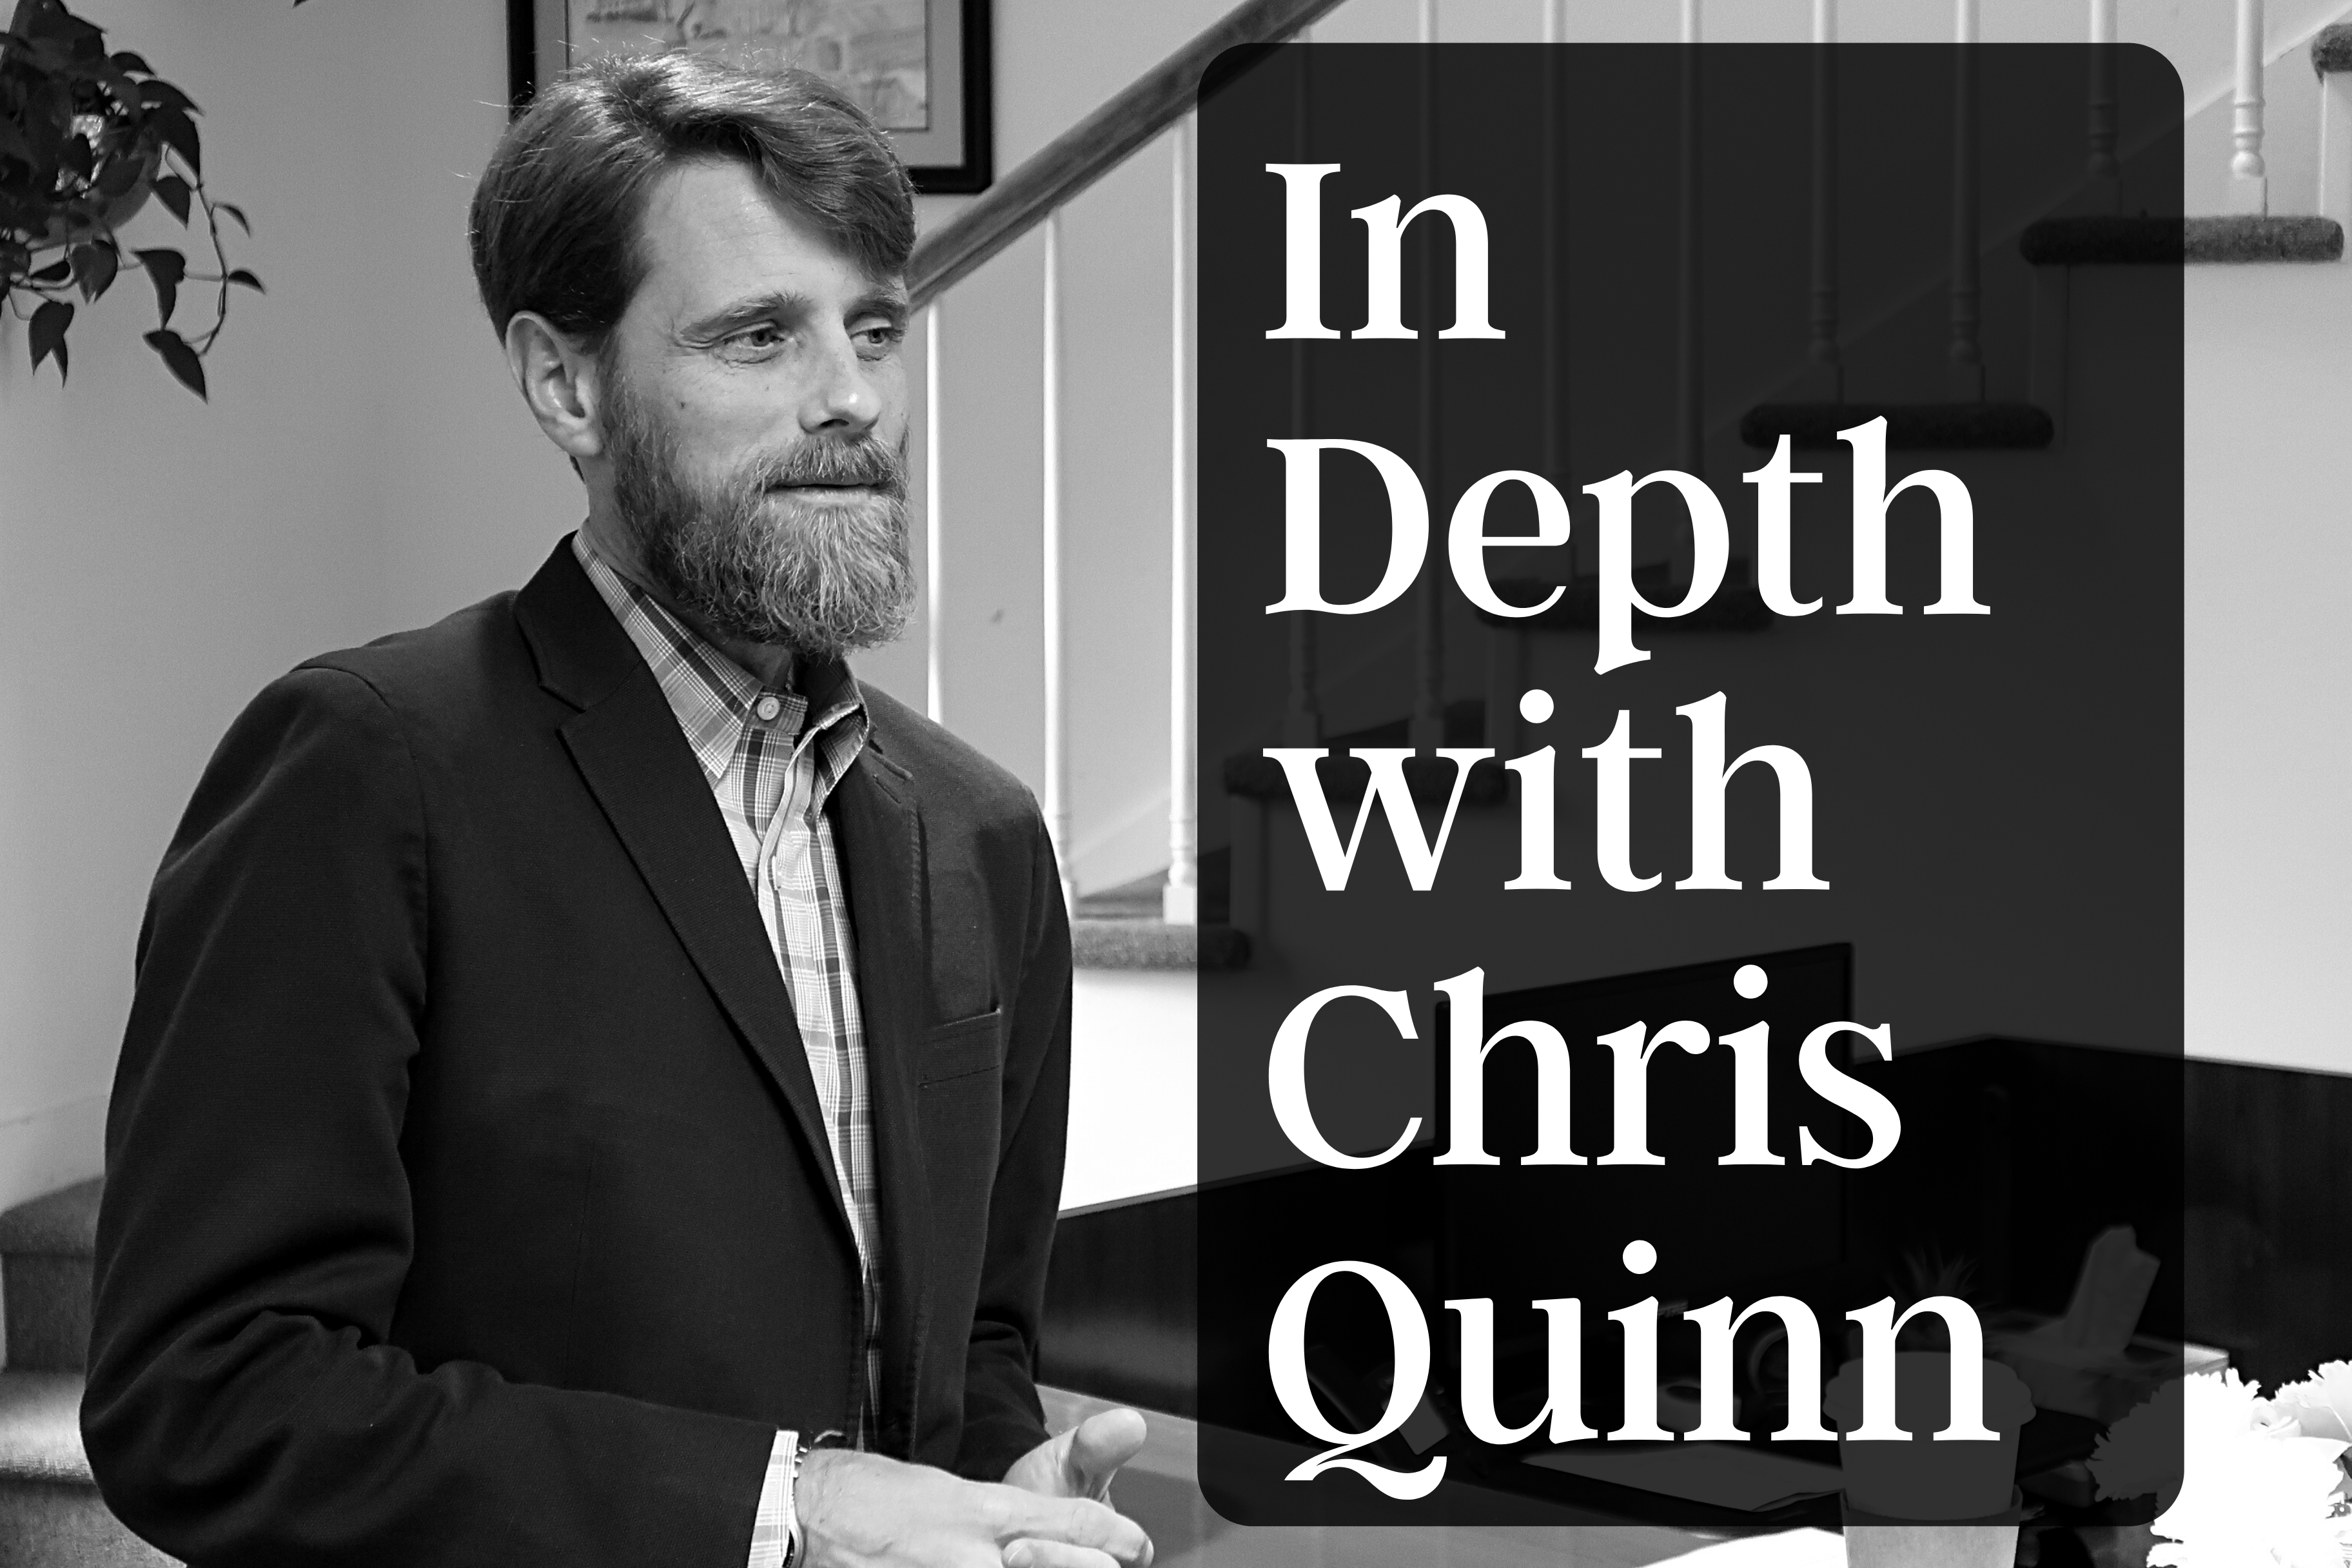 In depth with Chris Quinn (1)